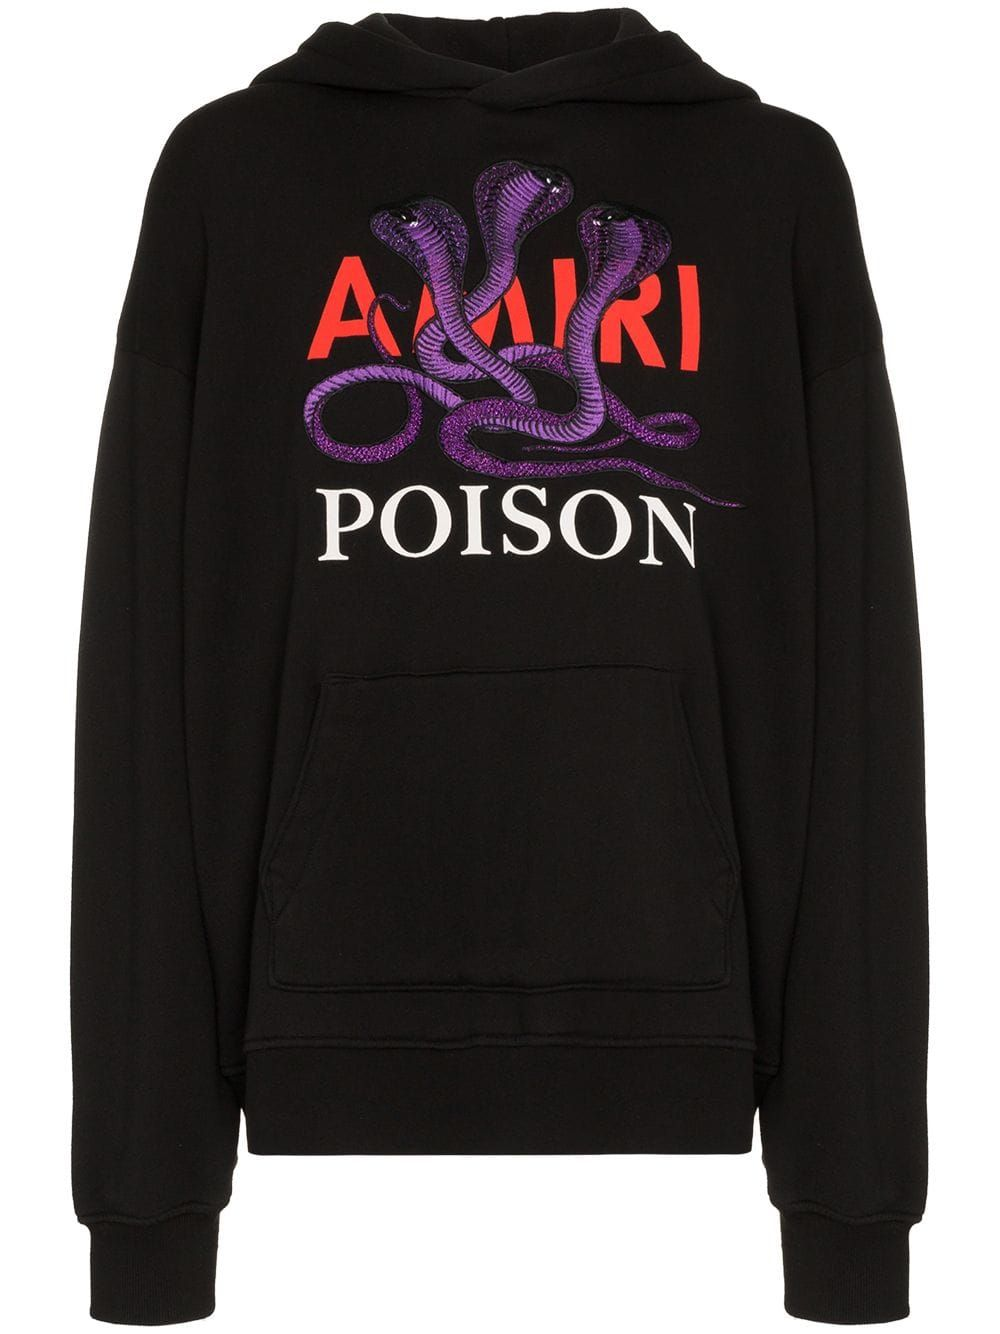 Amiri Fashion Black Poison Cotton cloth Hoodie amiri gnqzpOg6